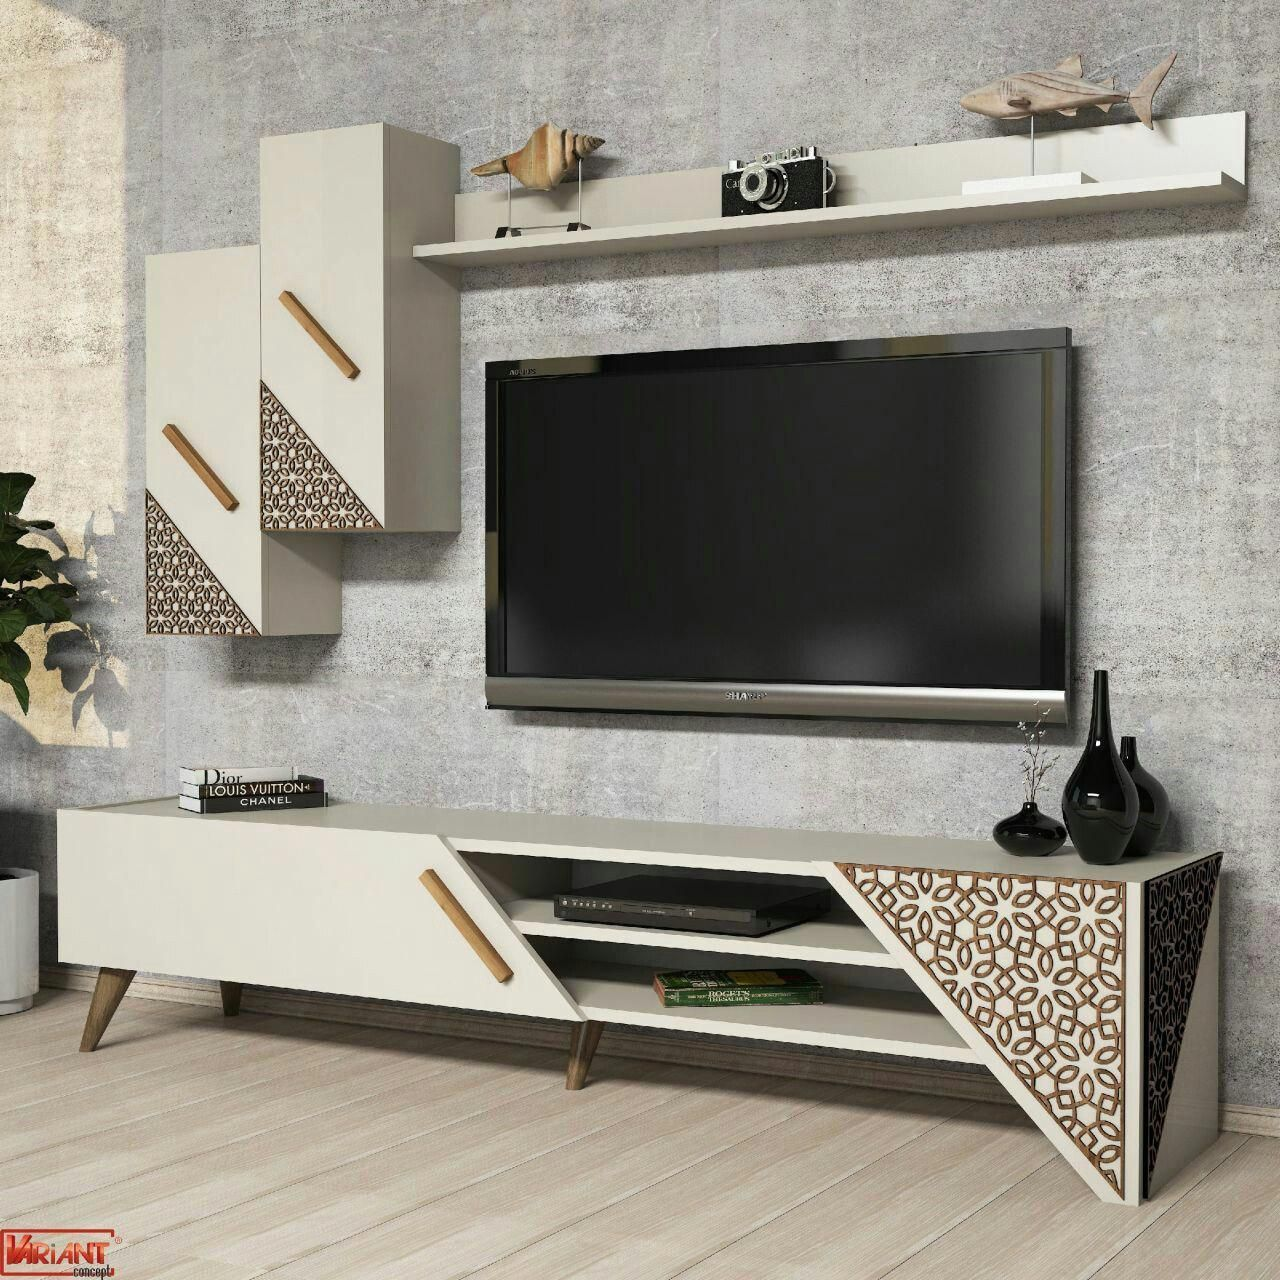 Beril Tvwallmountbedroompotterybarn Wall Tv Unit Design Living Room Tv Unit Designs Modern Tv Wall Units